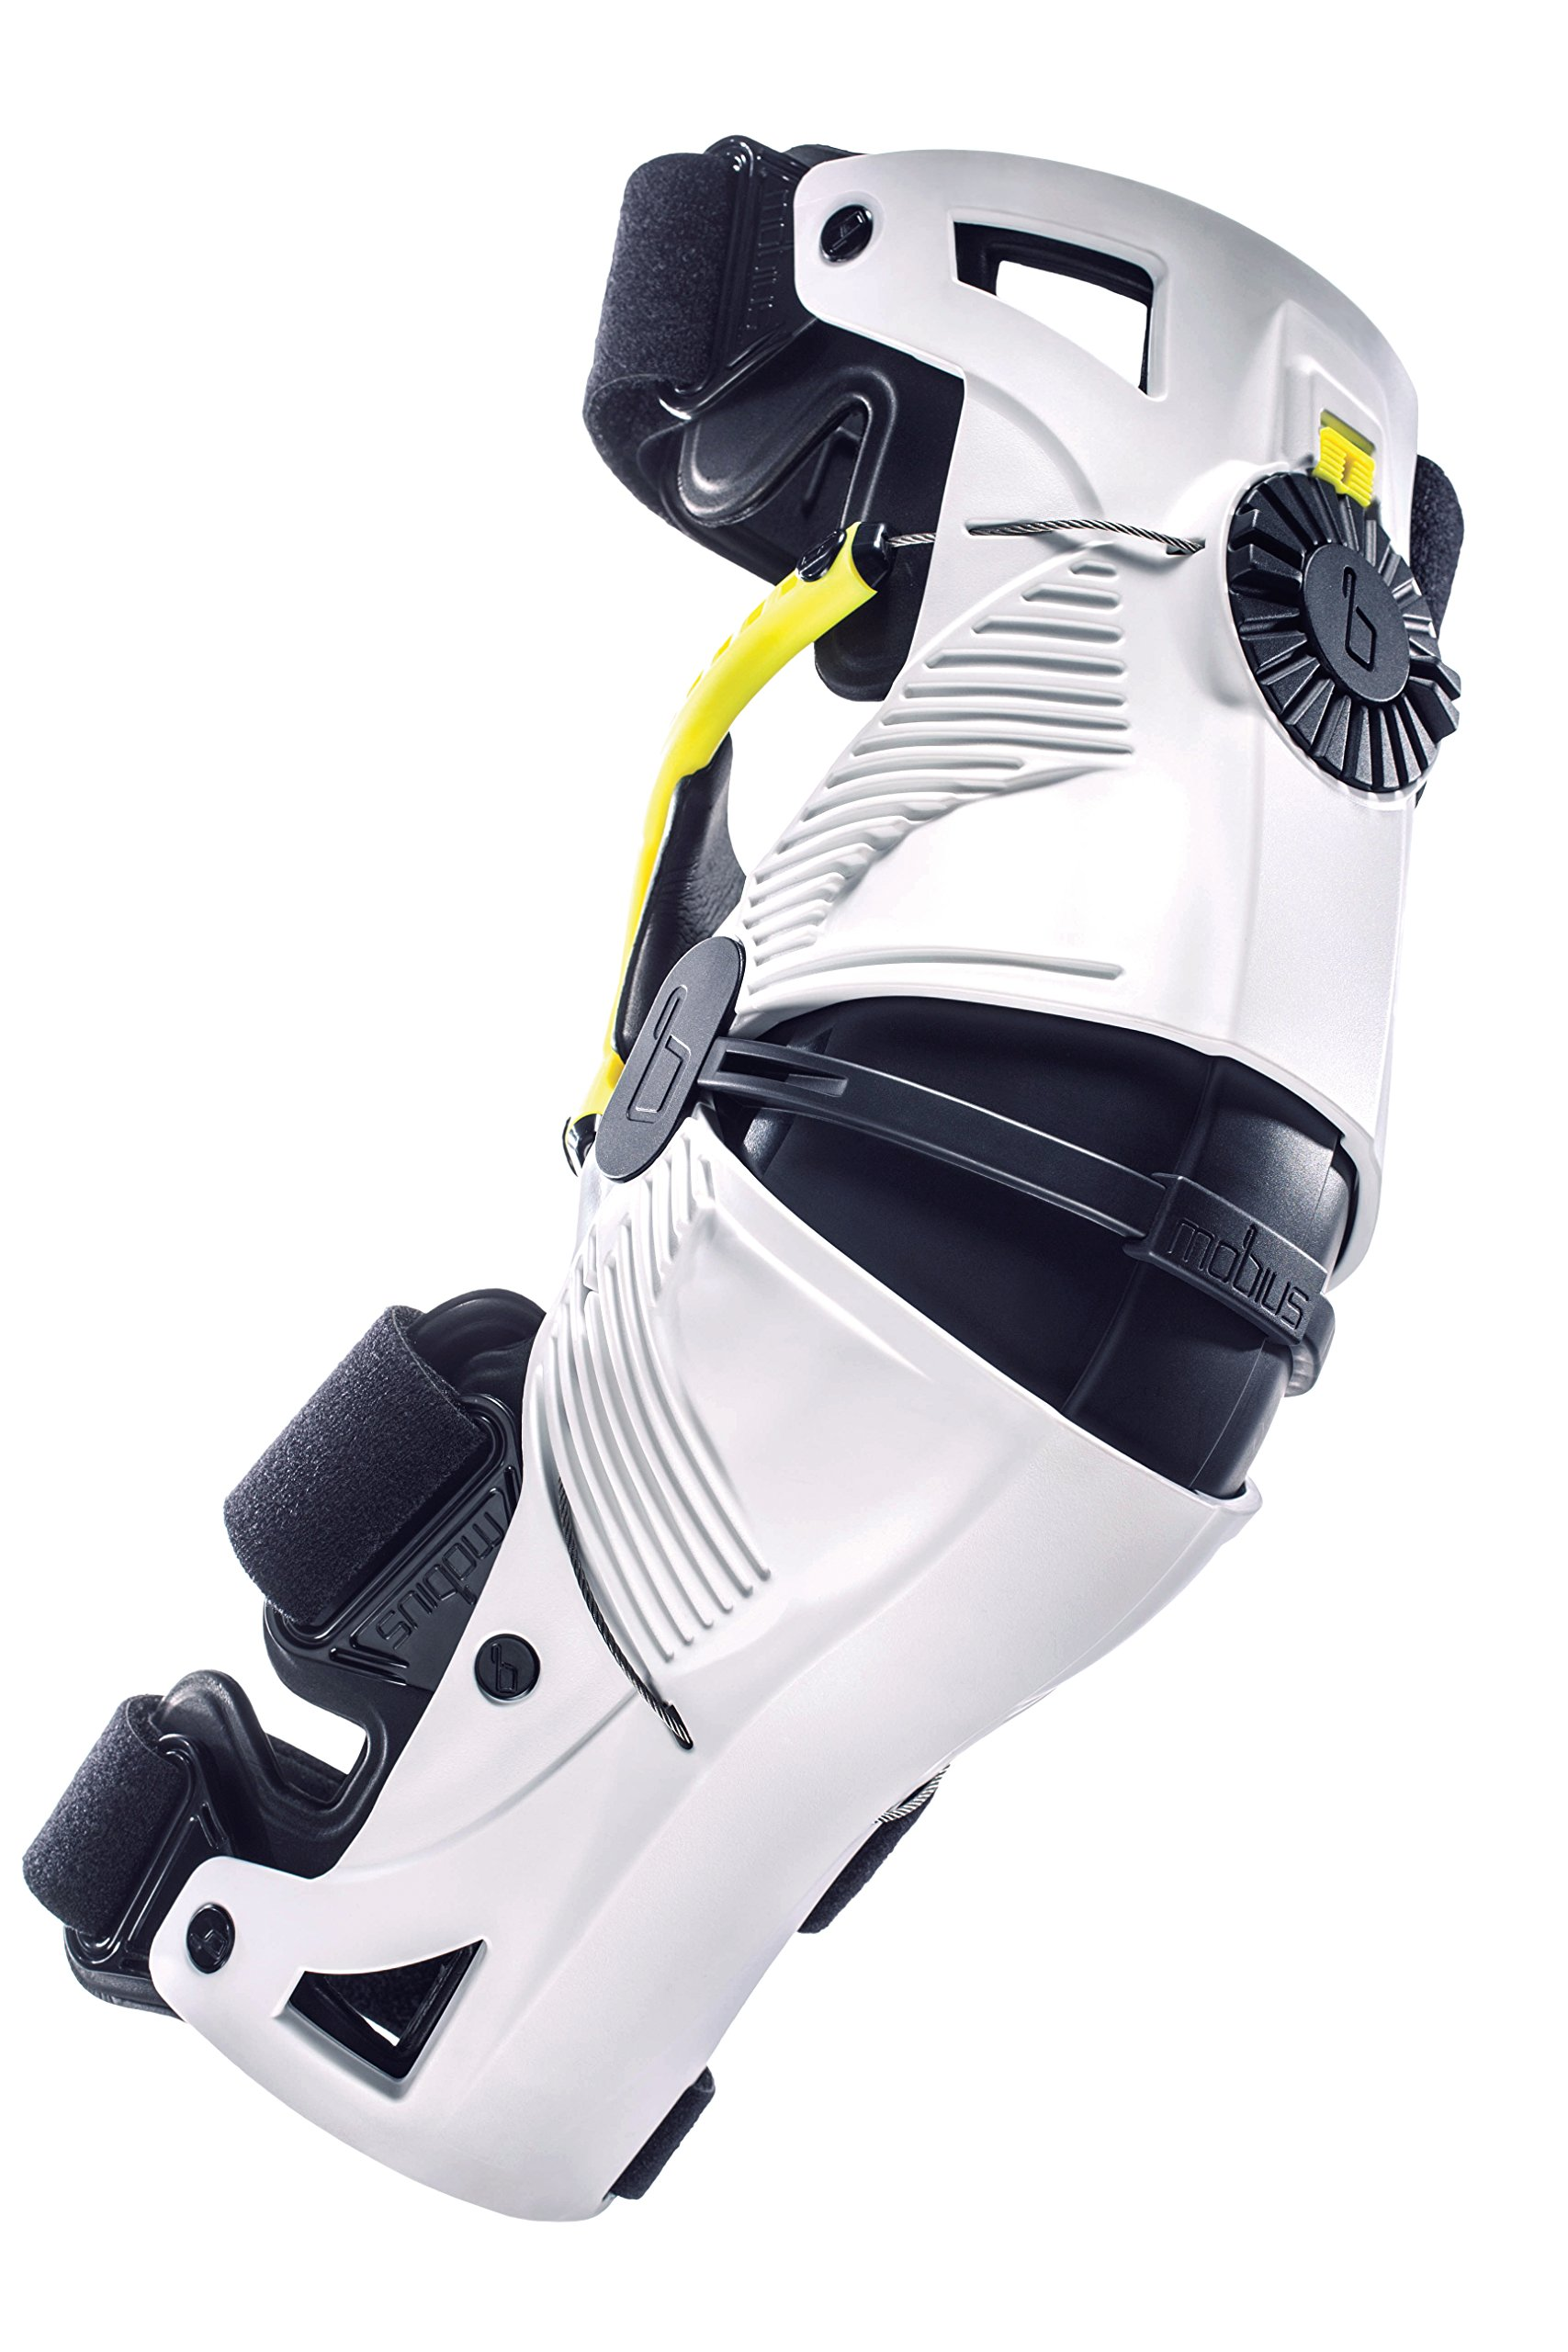 Mobius X8 Knee Pad, White/Yellow, Size XS